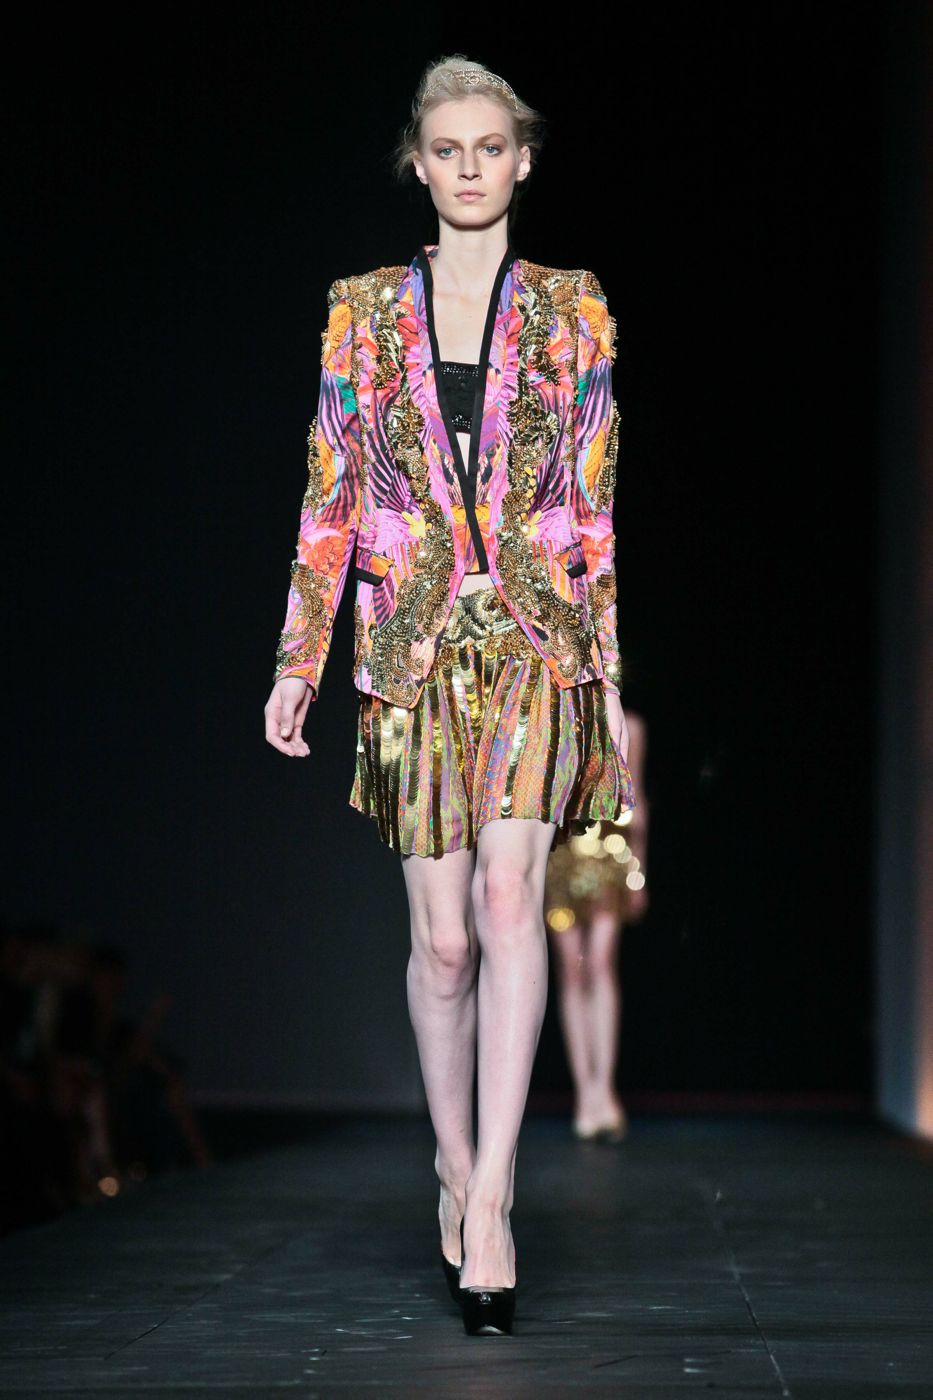 Roberto Cavalli Spring Summer 2012 Women Fashion Show Catwalk